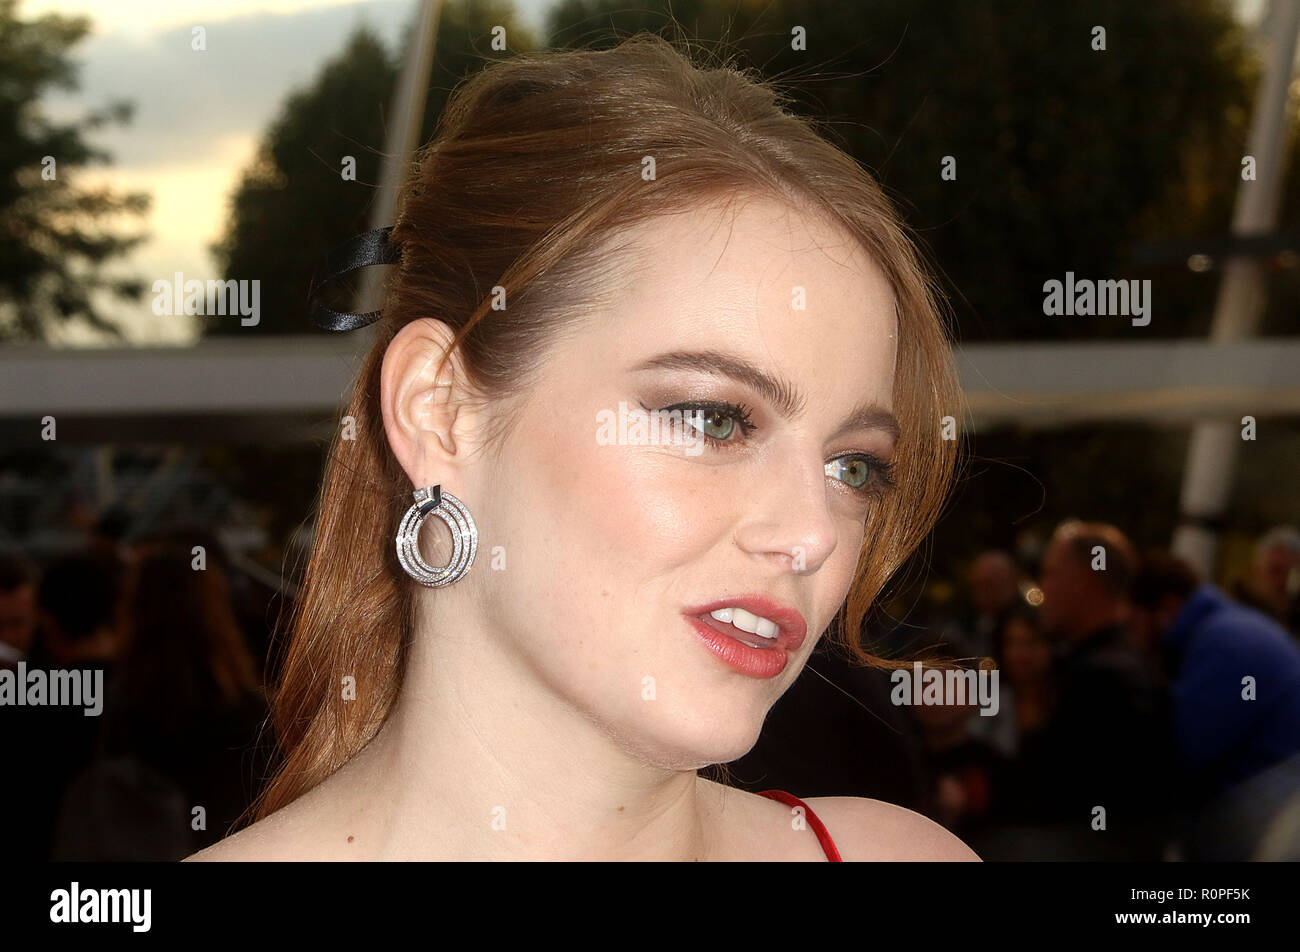 Sep 13, 2018  - Emma Stone attending The World Premiere Of 'Maniac', Southbank Centre in London, UK - Stock Image